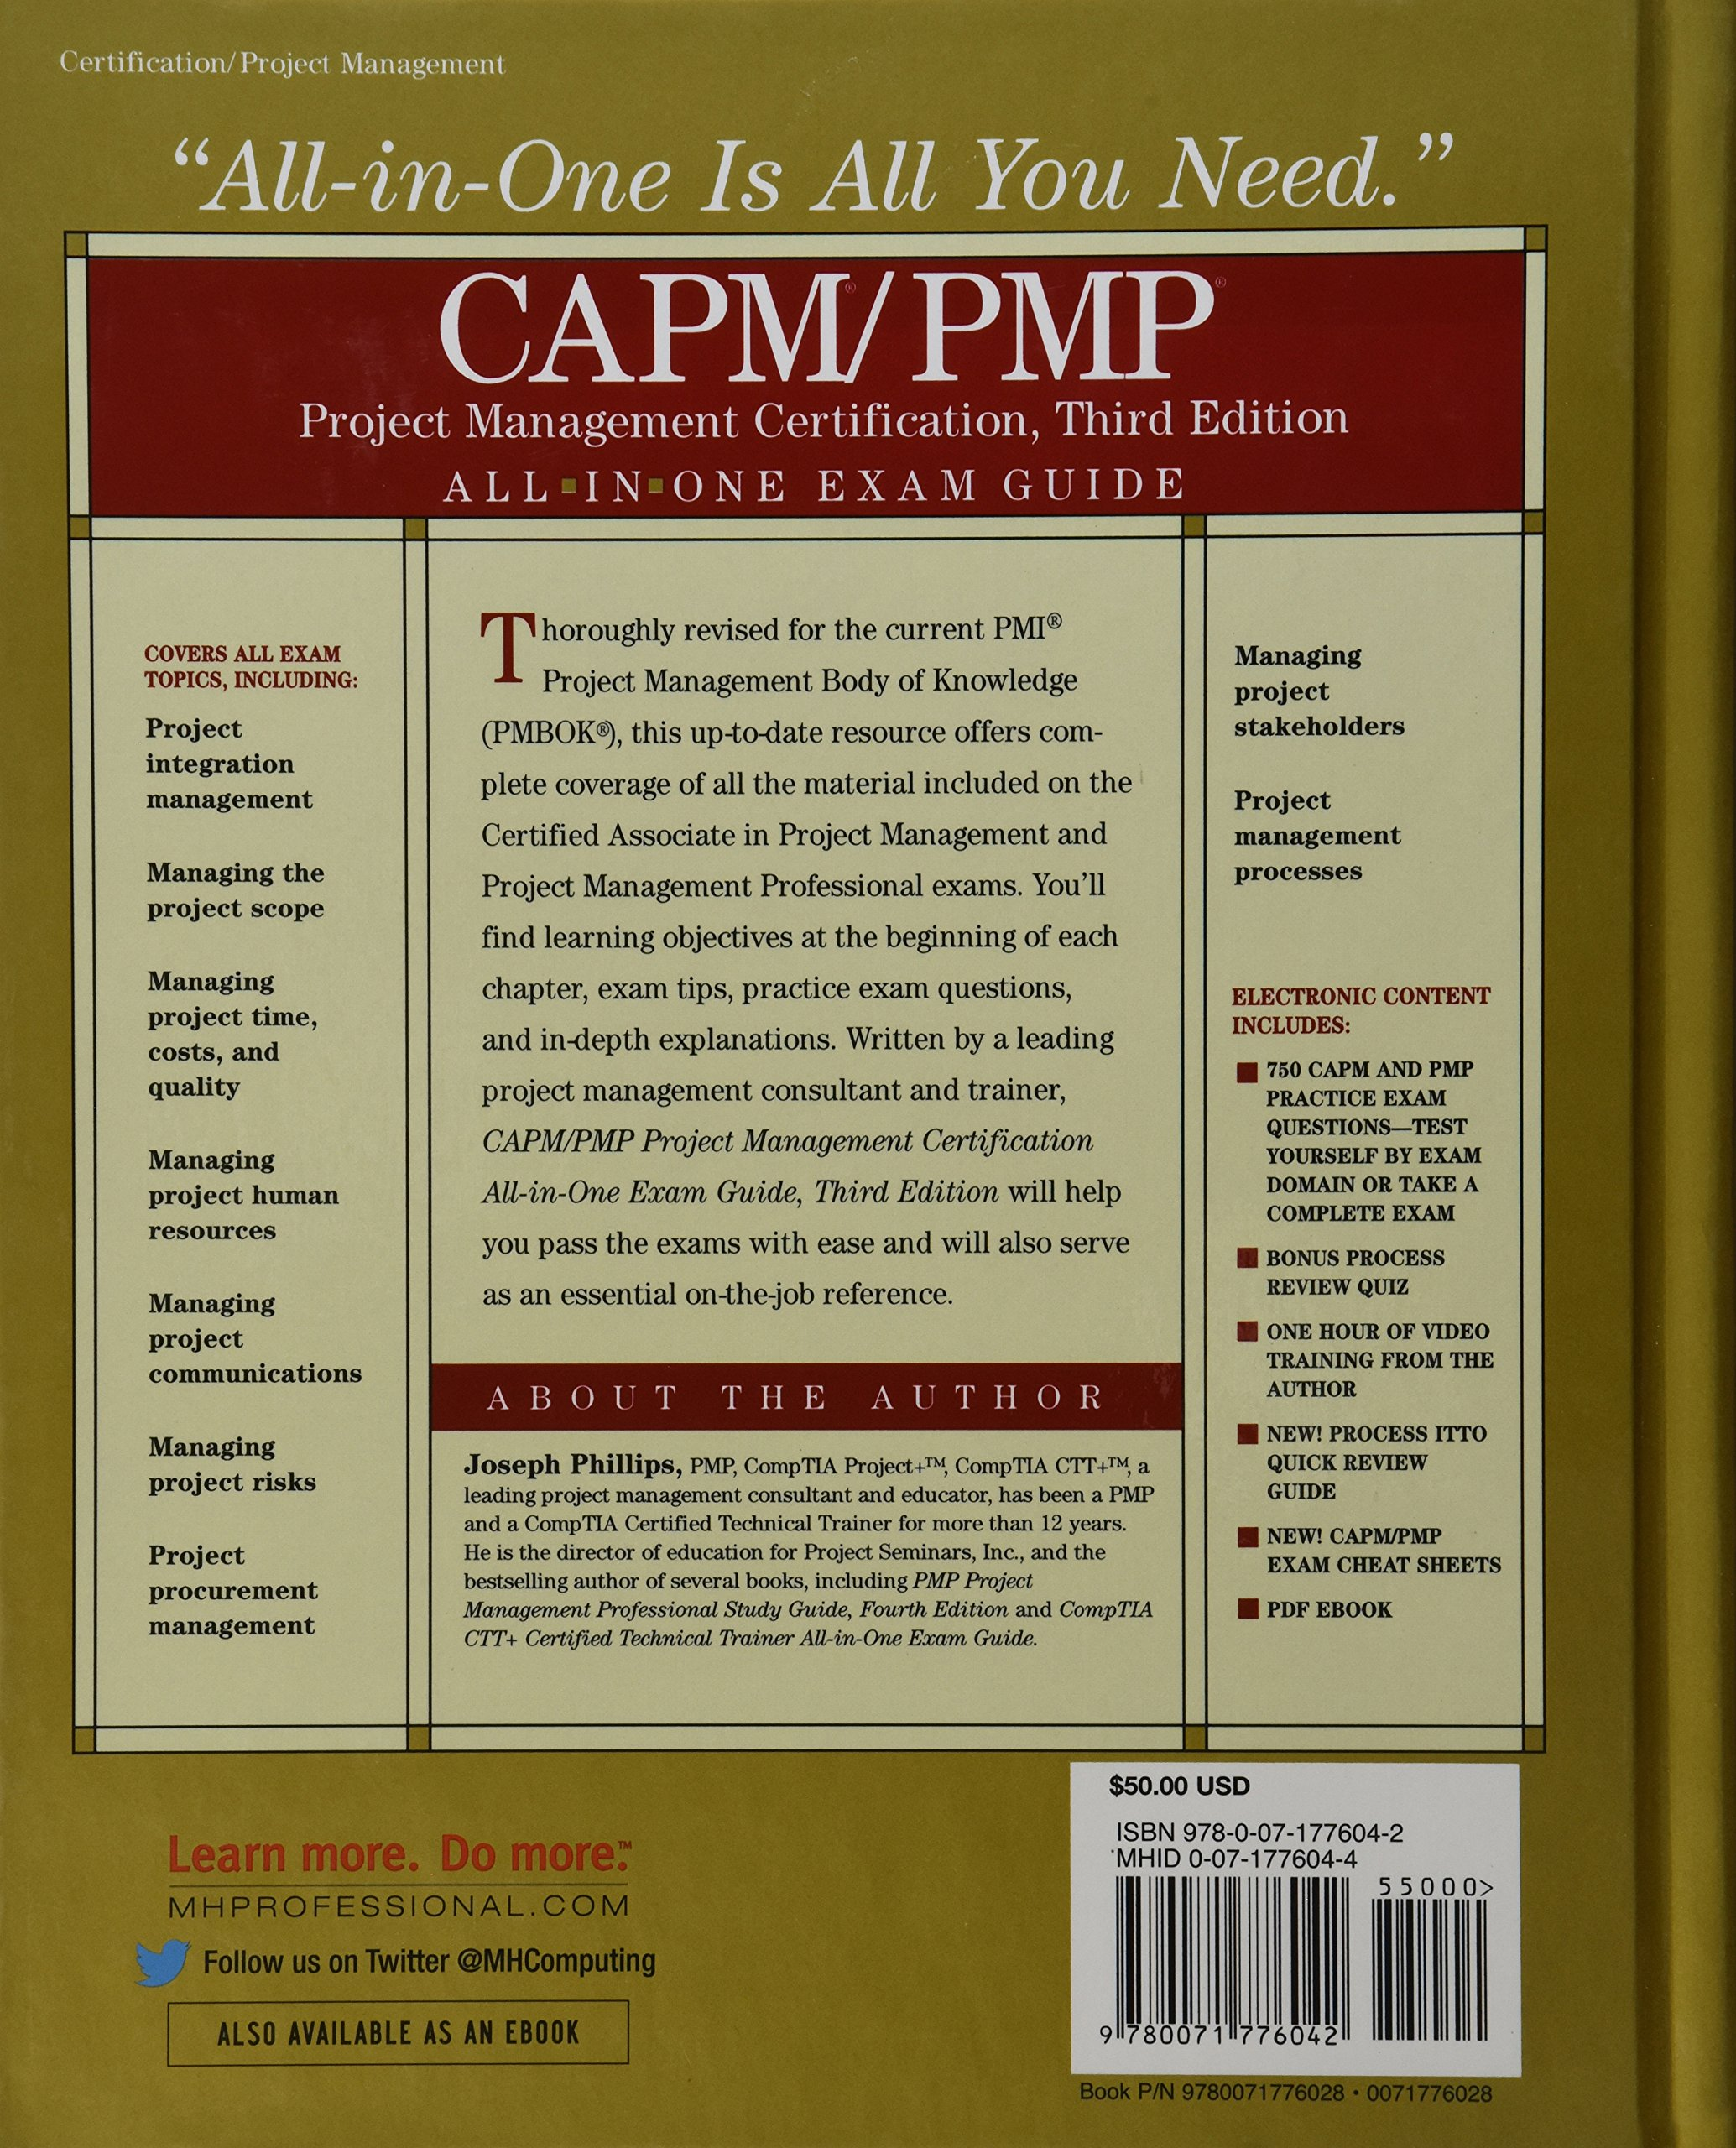 Amazon capmpmp project management certification all in one amazon capmpmp project management certification all in one exam guide third edition 9780071776042 joseph phillips books xflitez Image collections